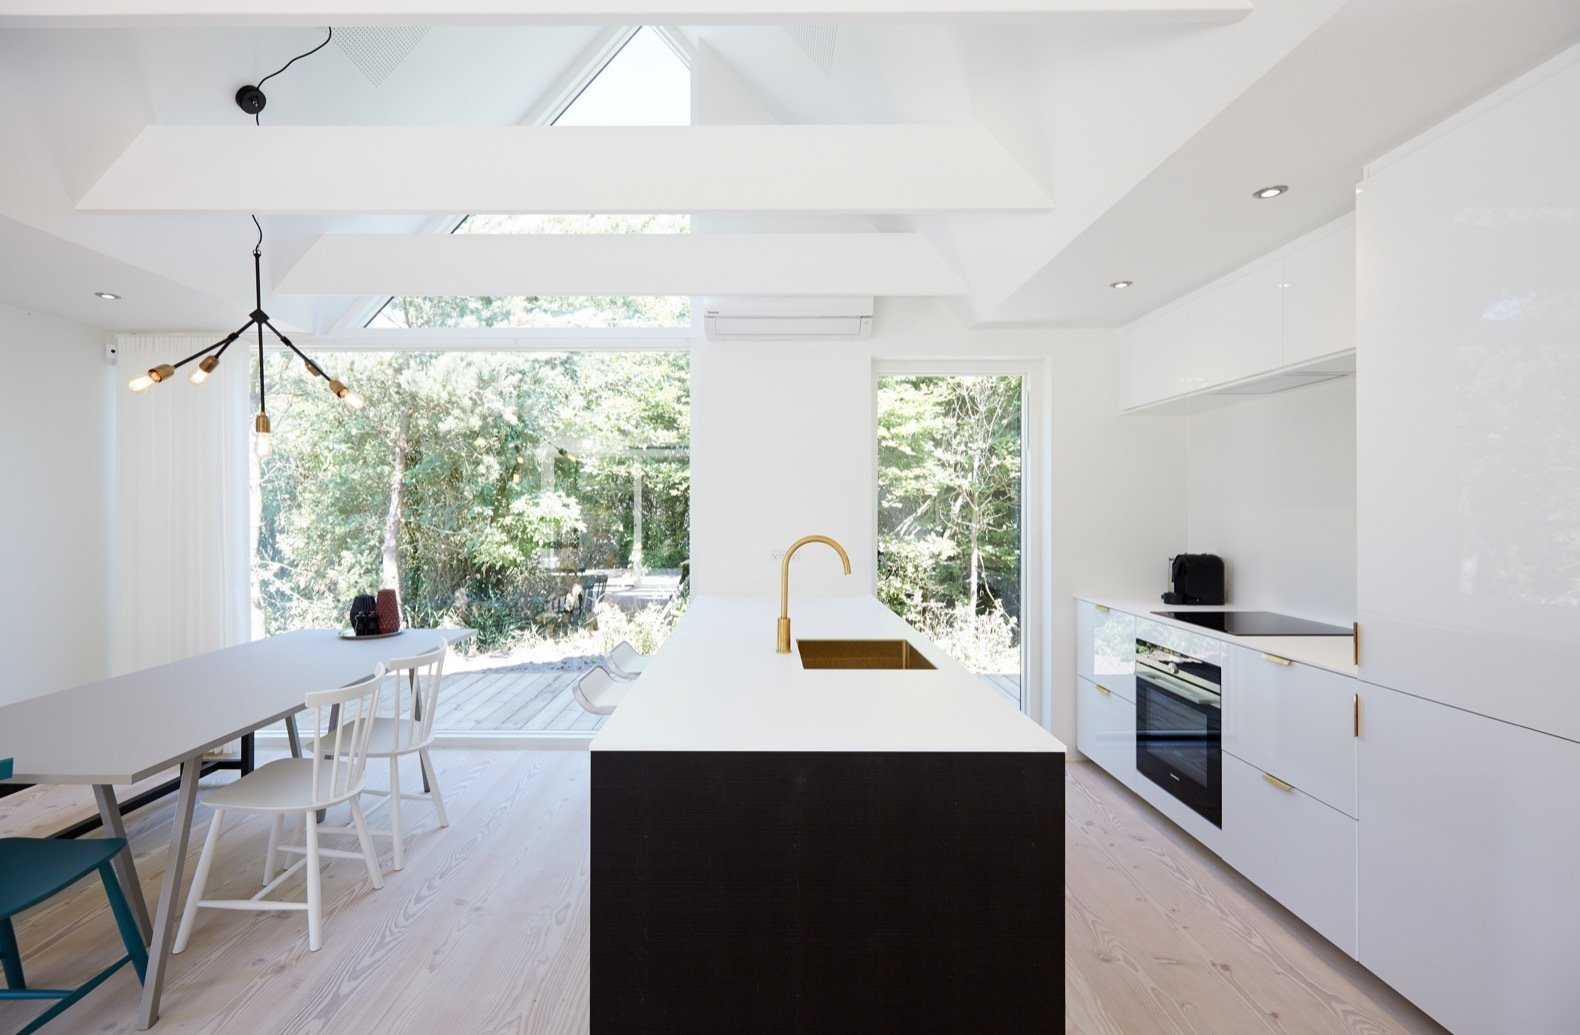 Kitchen, Recessed Lighting, White Cabinet, Pendant Lighting, Light Hardwood Floor, Refrigerator, Cooktops, Wall Oven, and Undermount Sink The kitchen is fitted with sleek metal hardware, high-gloss white cabinetry, and a spacious kitchen island that doubles as a breakfast counter.    Photos from Revel in Scandinavian Design at This Seaside Holiday Home